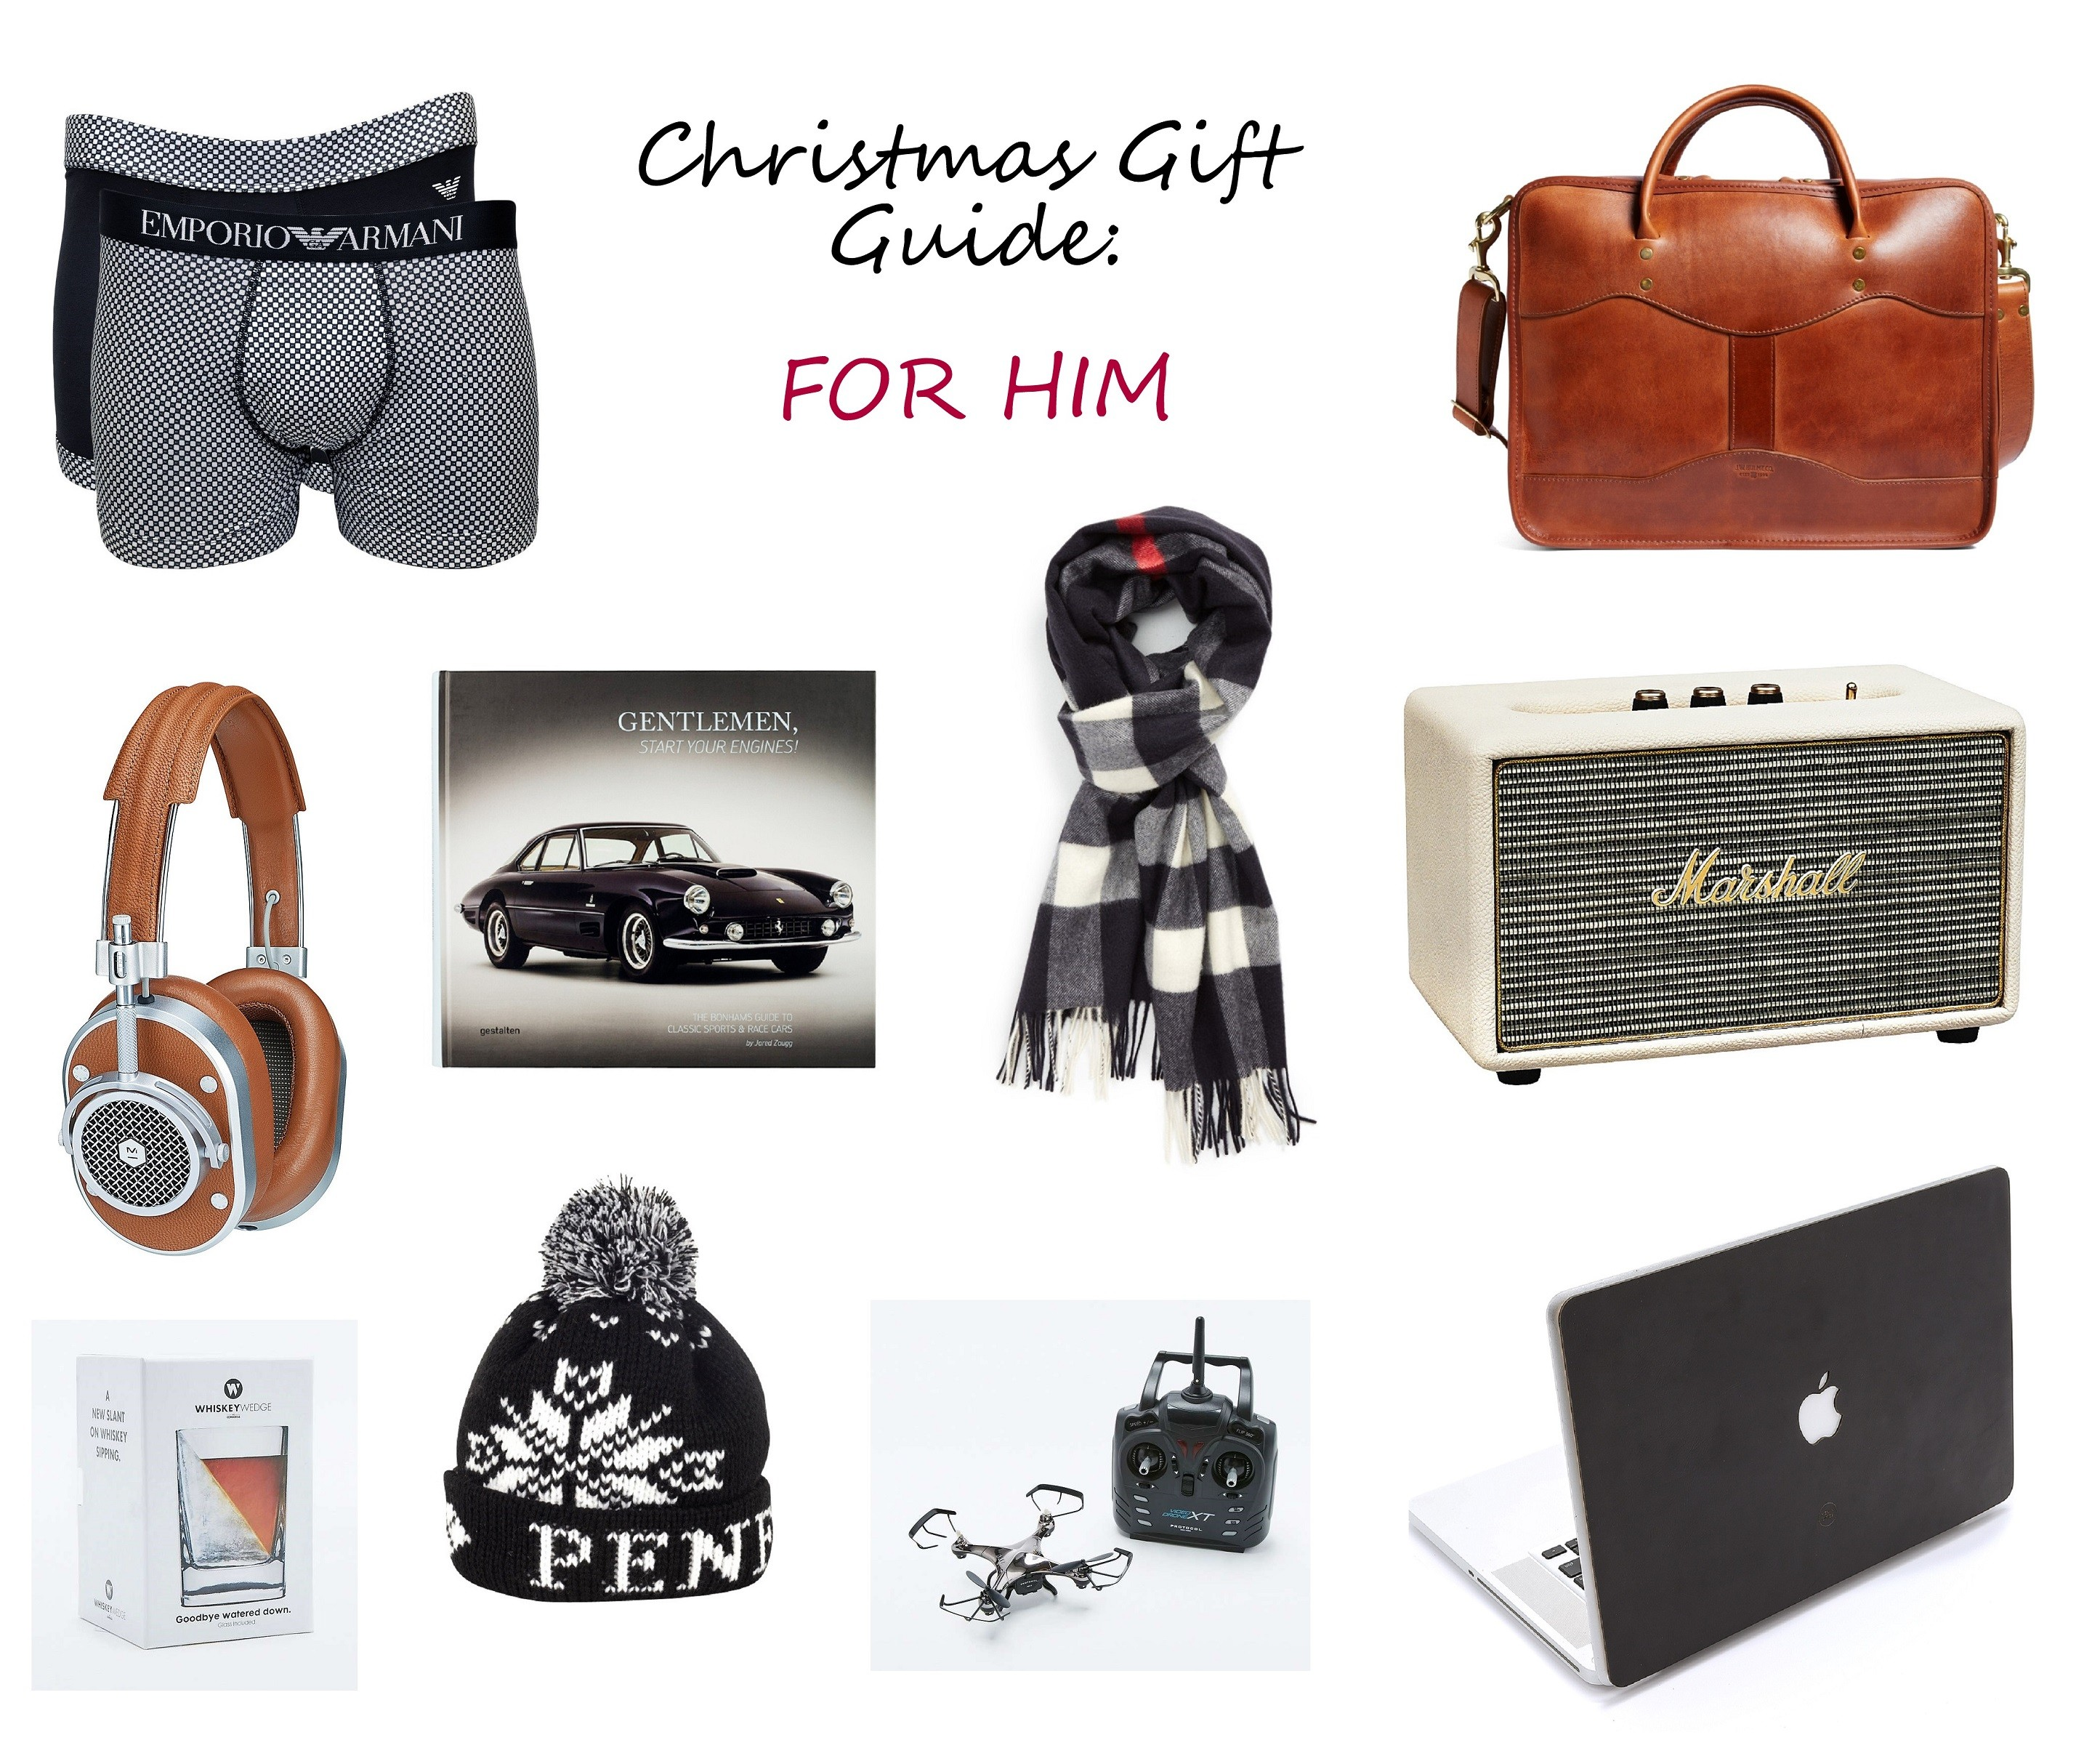 christmas gift guide for him holiday present ideas for men father boyfriend husband brother